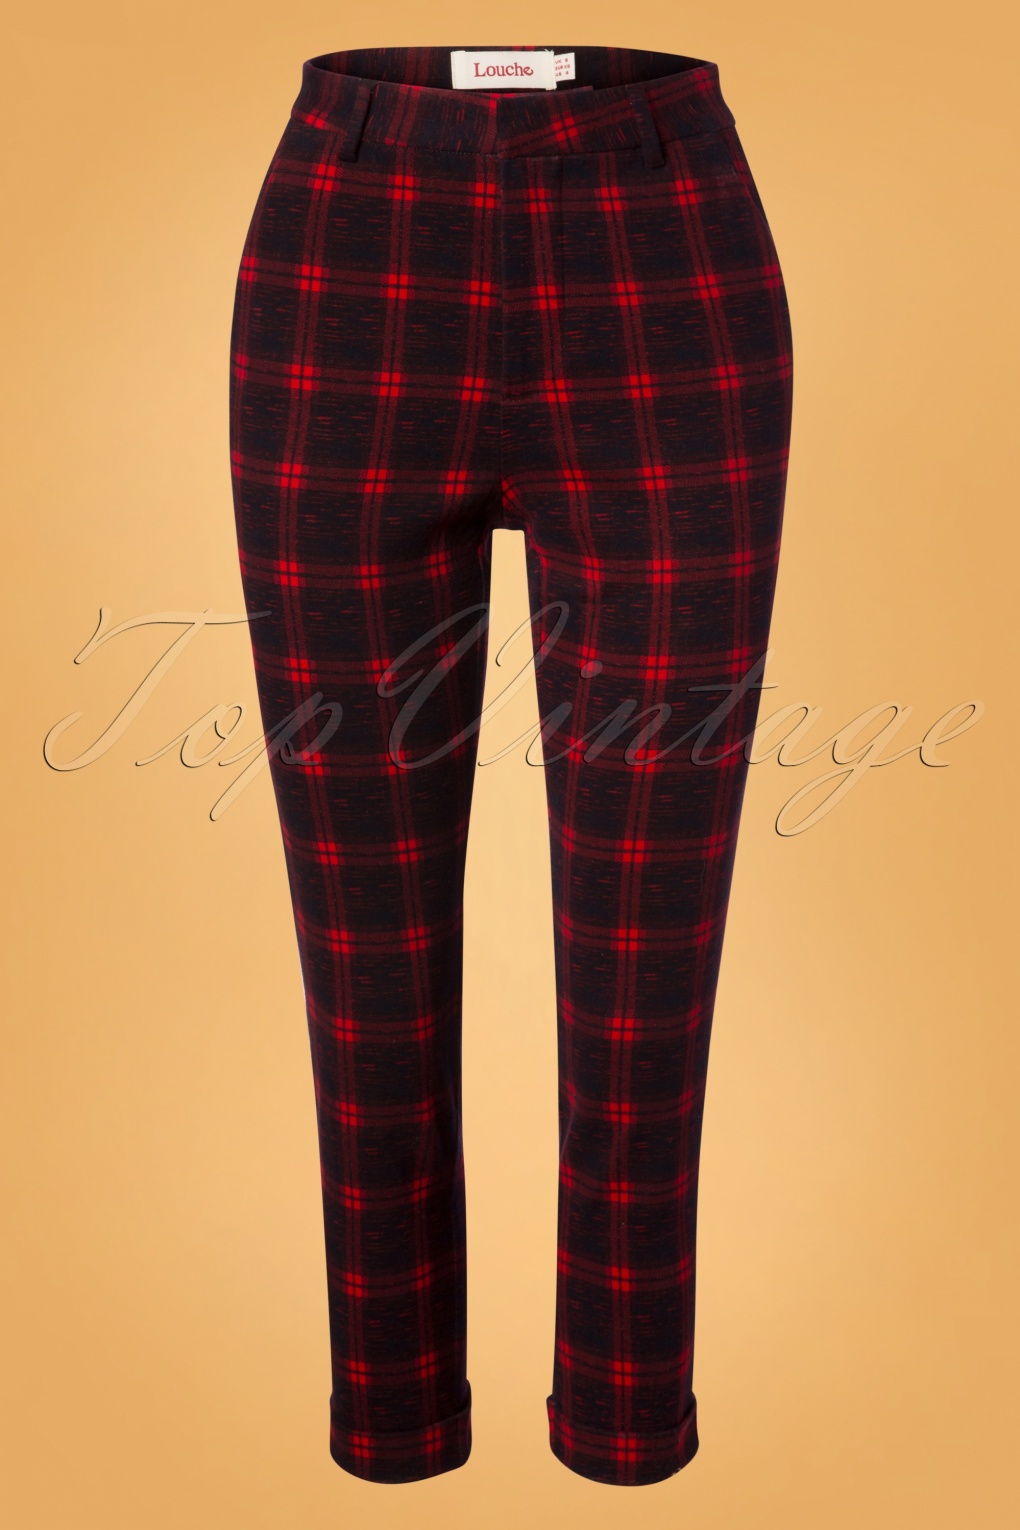 Vintage High Waisted Trousers, Sailor Pants, Jeans 60s Jaylo Plaid Trousers in Red and Black £57.07 AT vintagedancer.com